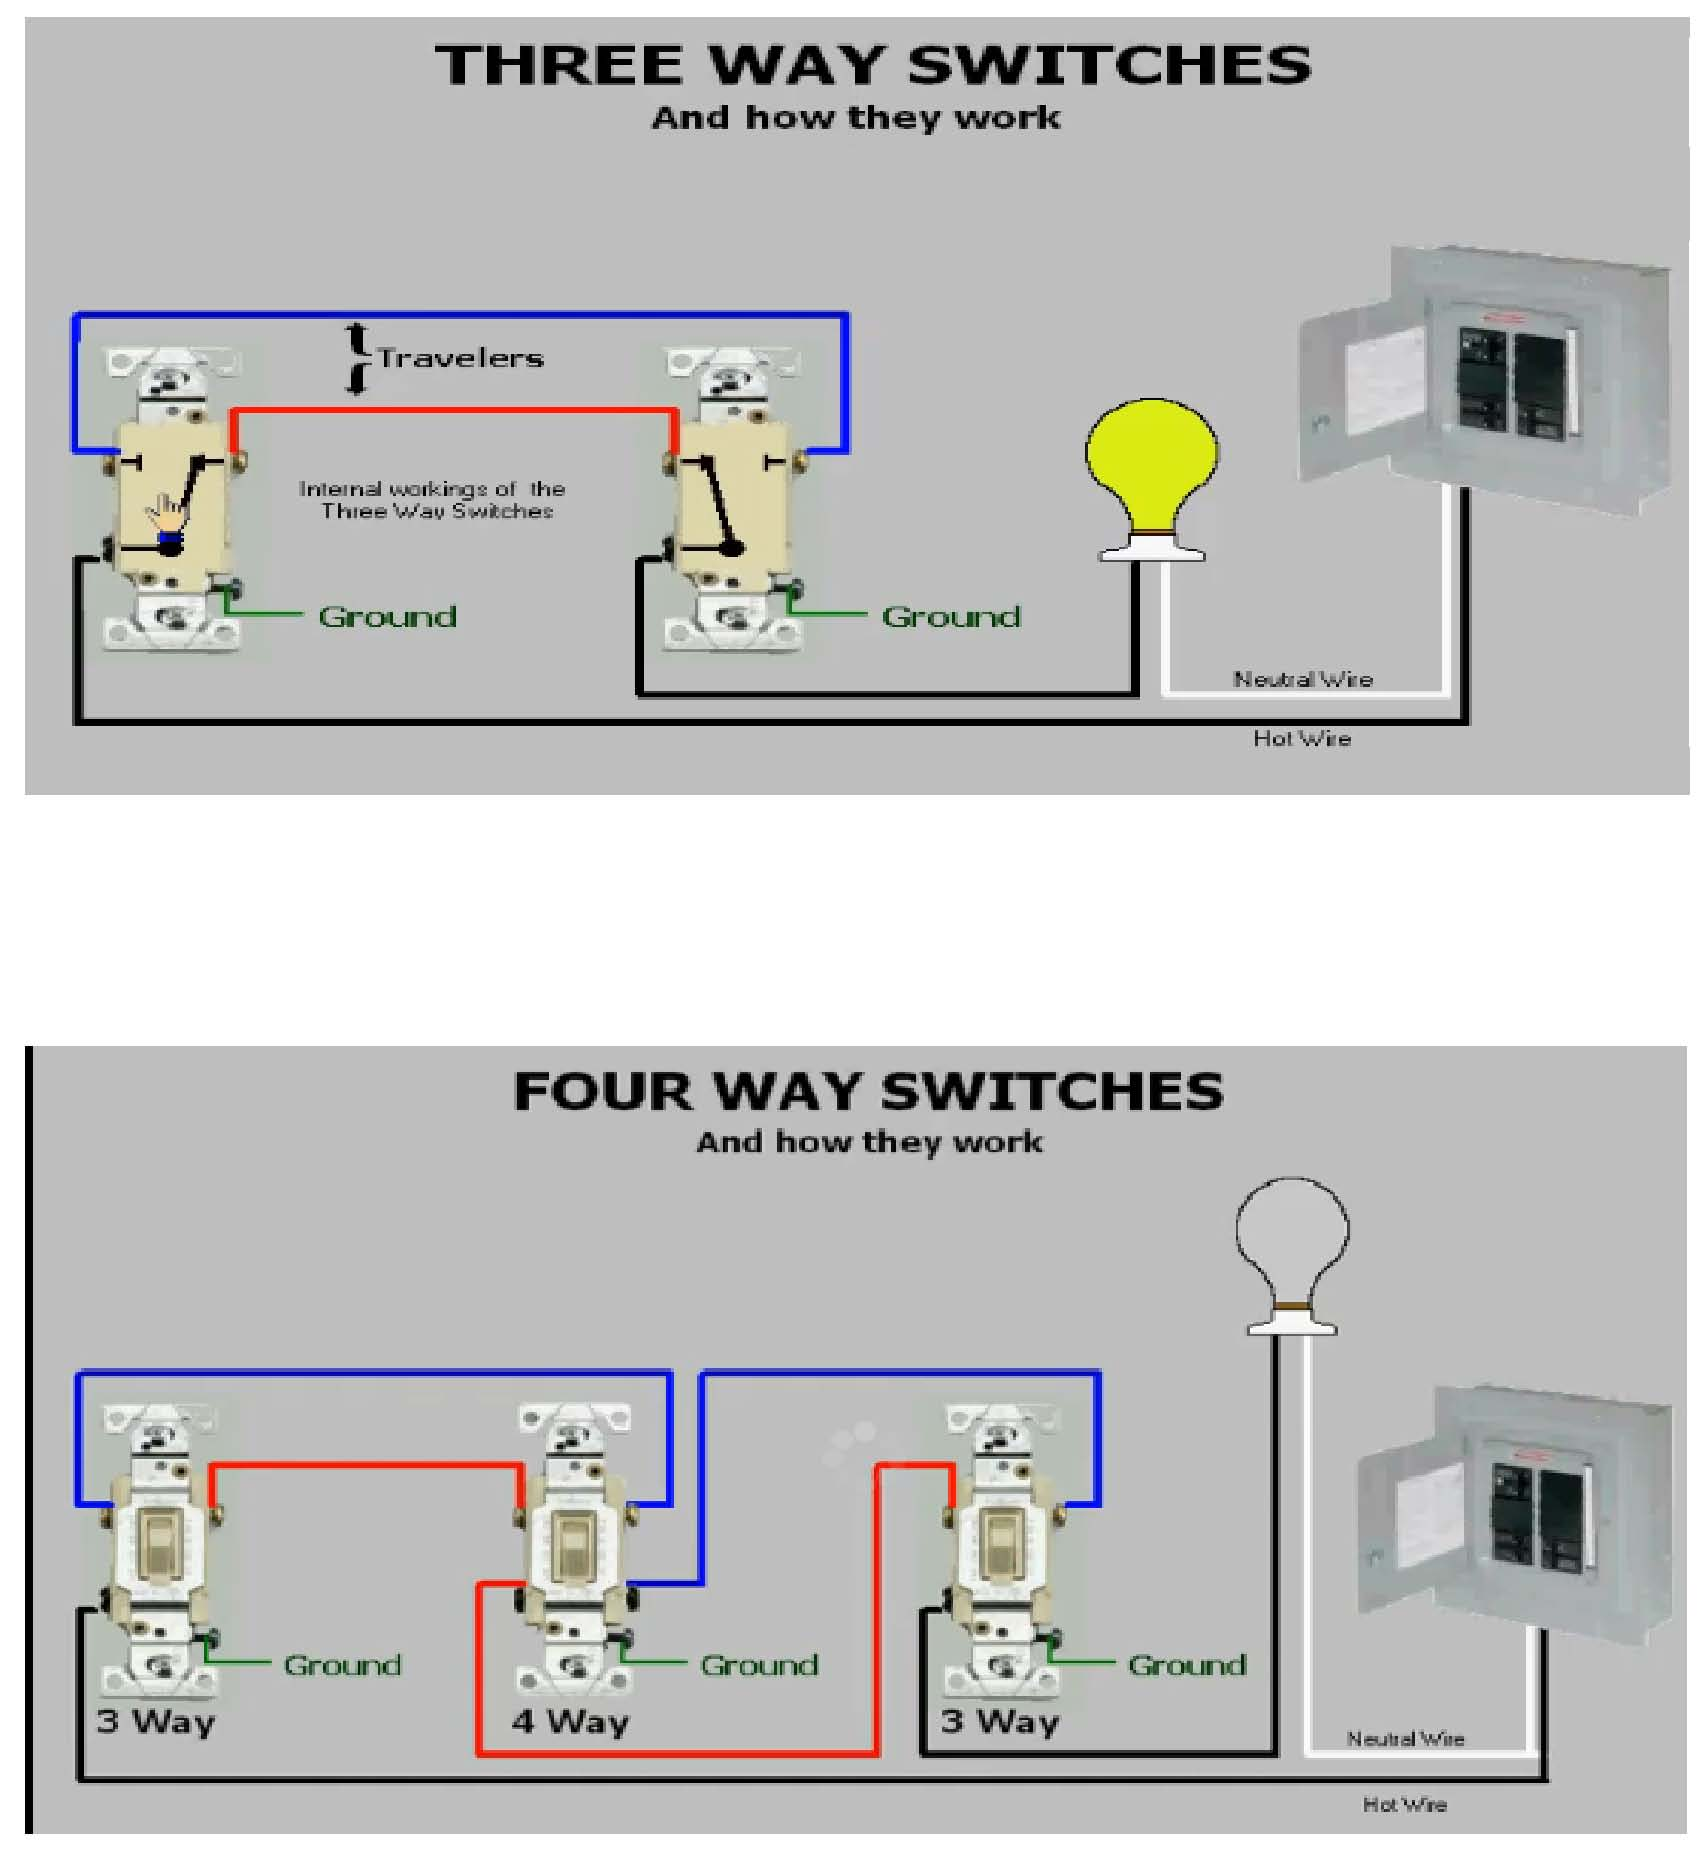 electrical wiring diagrams single pole switches html with Eaton 3 Way Switch Wiring Diagram on  also Schneider Acb Wiring Diagram besides Wiring switches as well Wiring Contactor Lc1d091o Daynight Switch 43604 also 12 Volt Single Pole Toggle Switch Wiring Diagram.